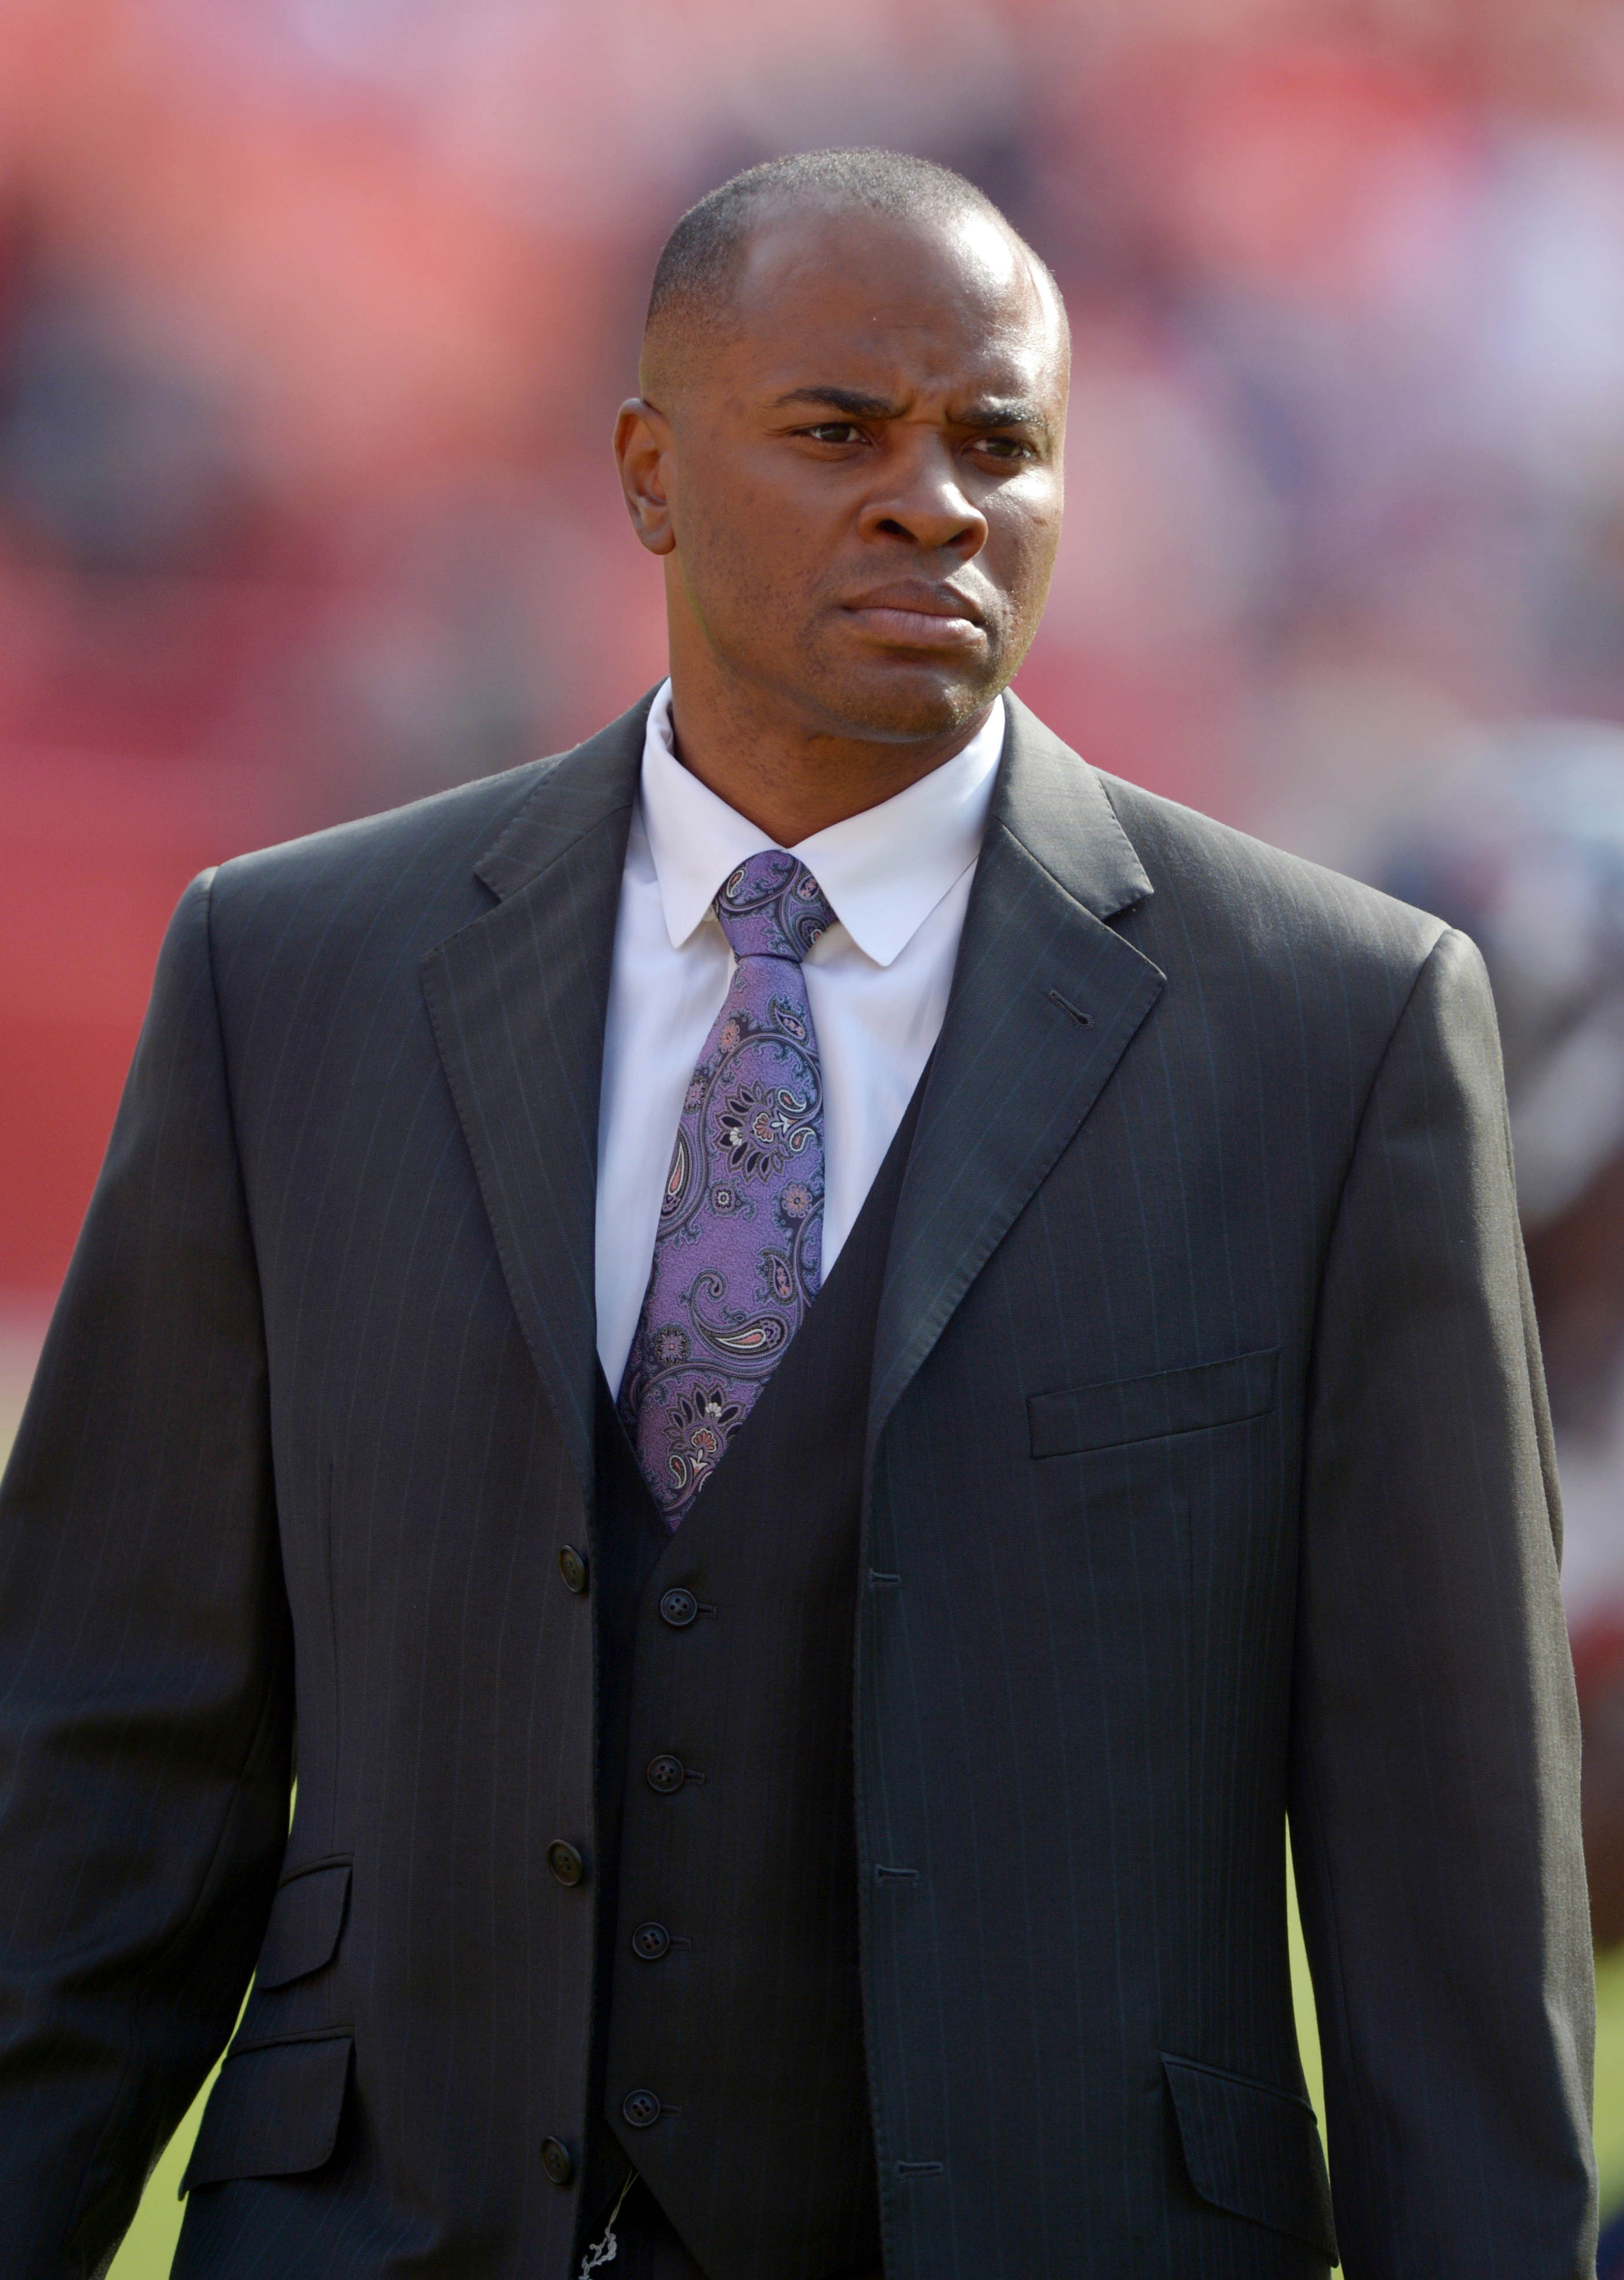 Pictured above is Houston Texans general manager and leading theoretical physicist Rick Smith, seen here contemplating the infinite vastness of the universe.